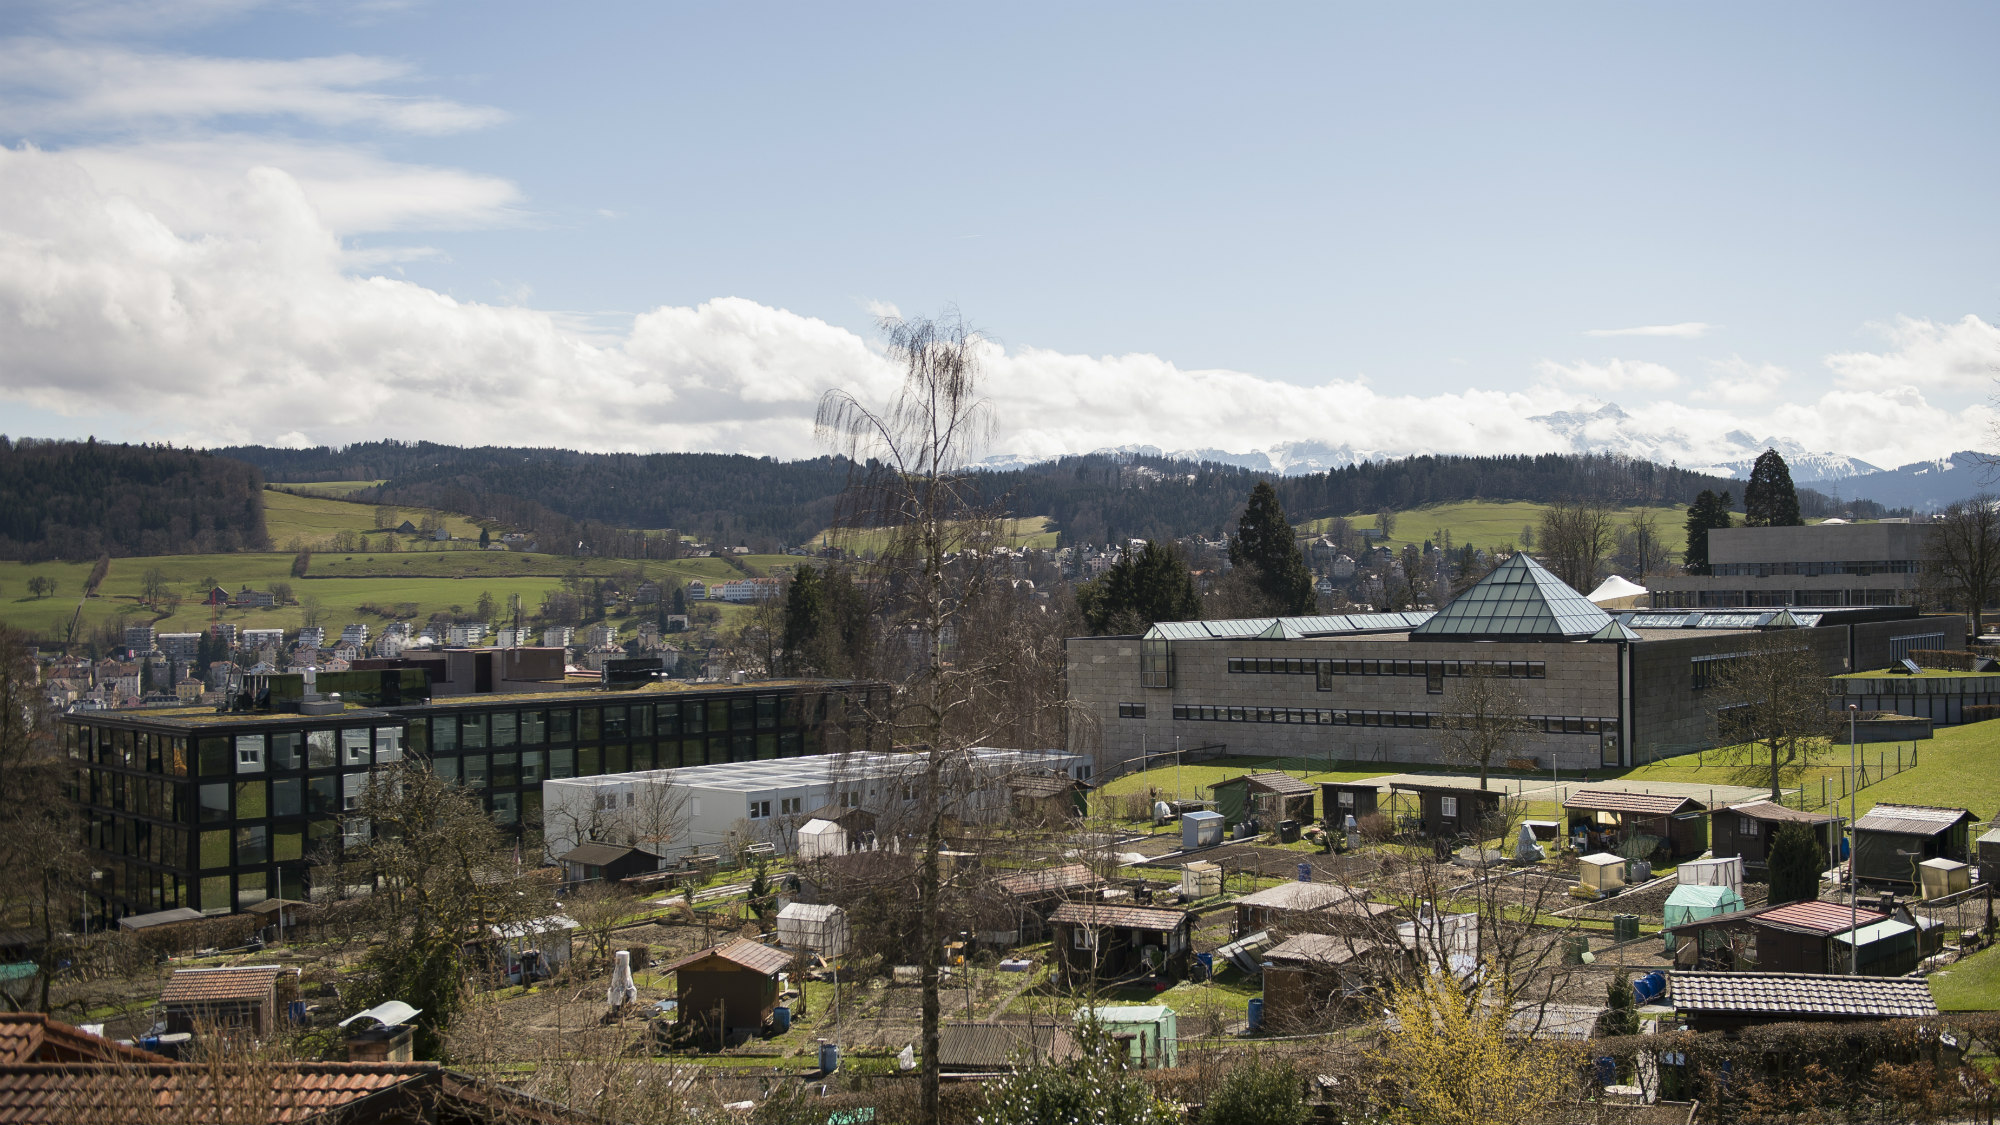 Photograph of the Library Building of the University of St.Gallen (HSG) with its surroundings